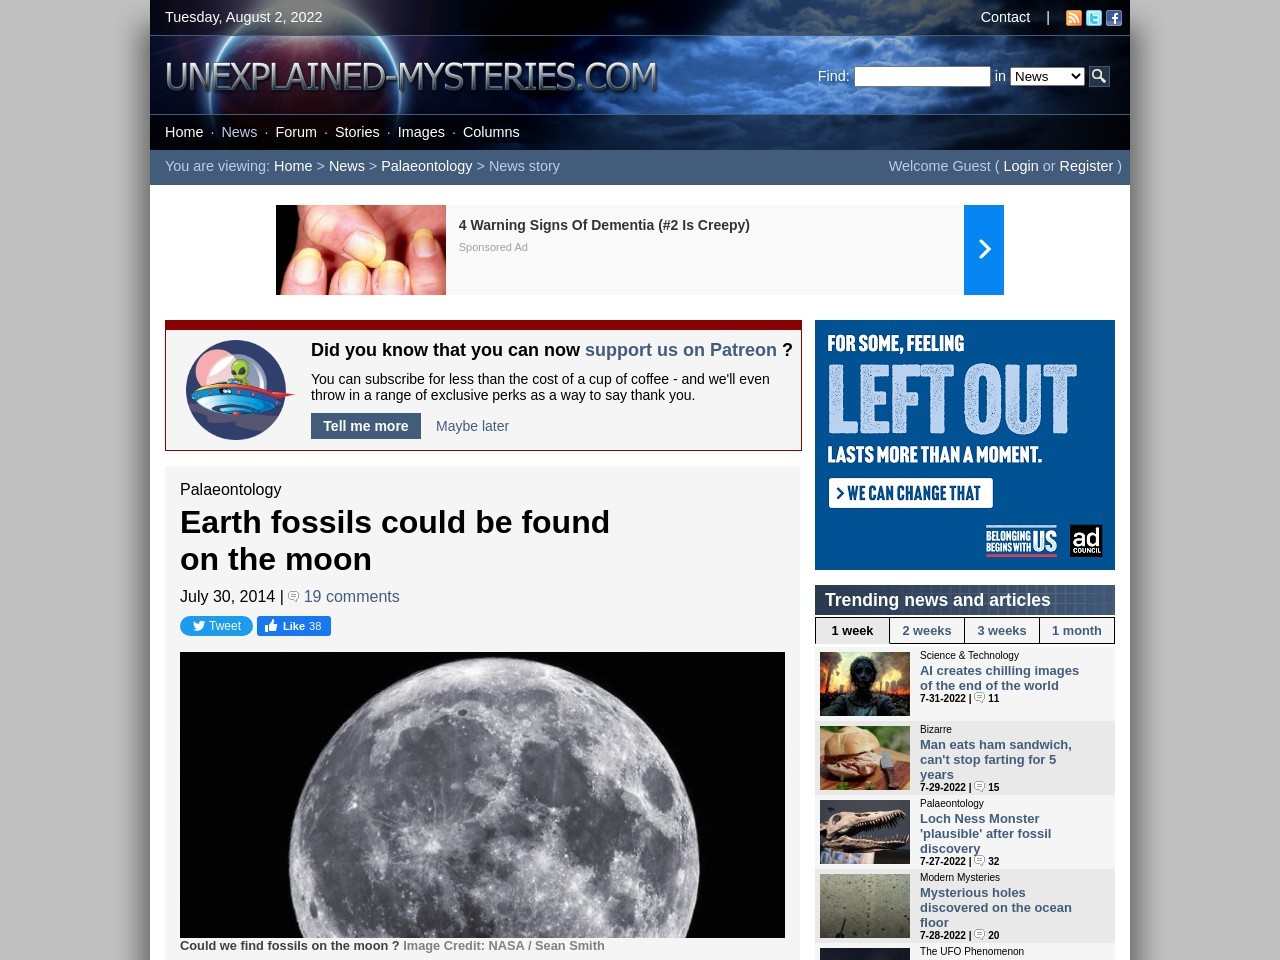 Earth fossils could be found on the moon